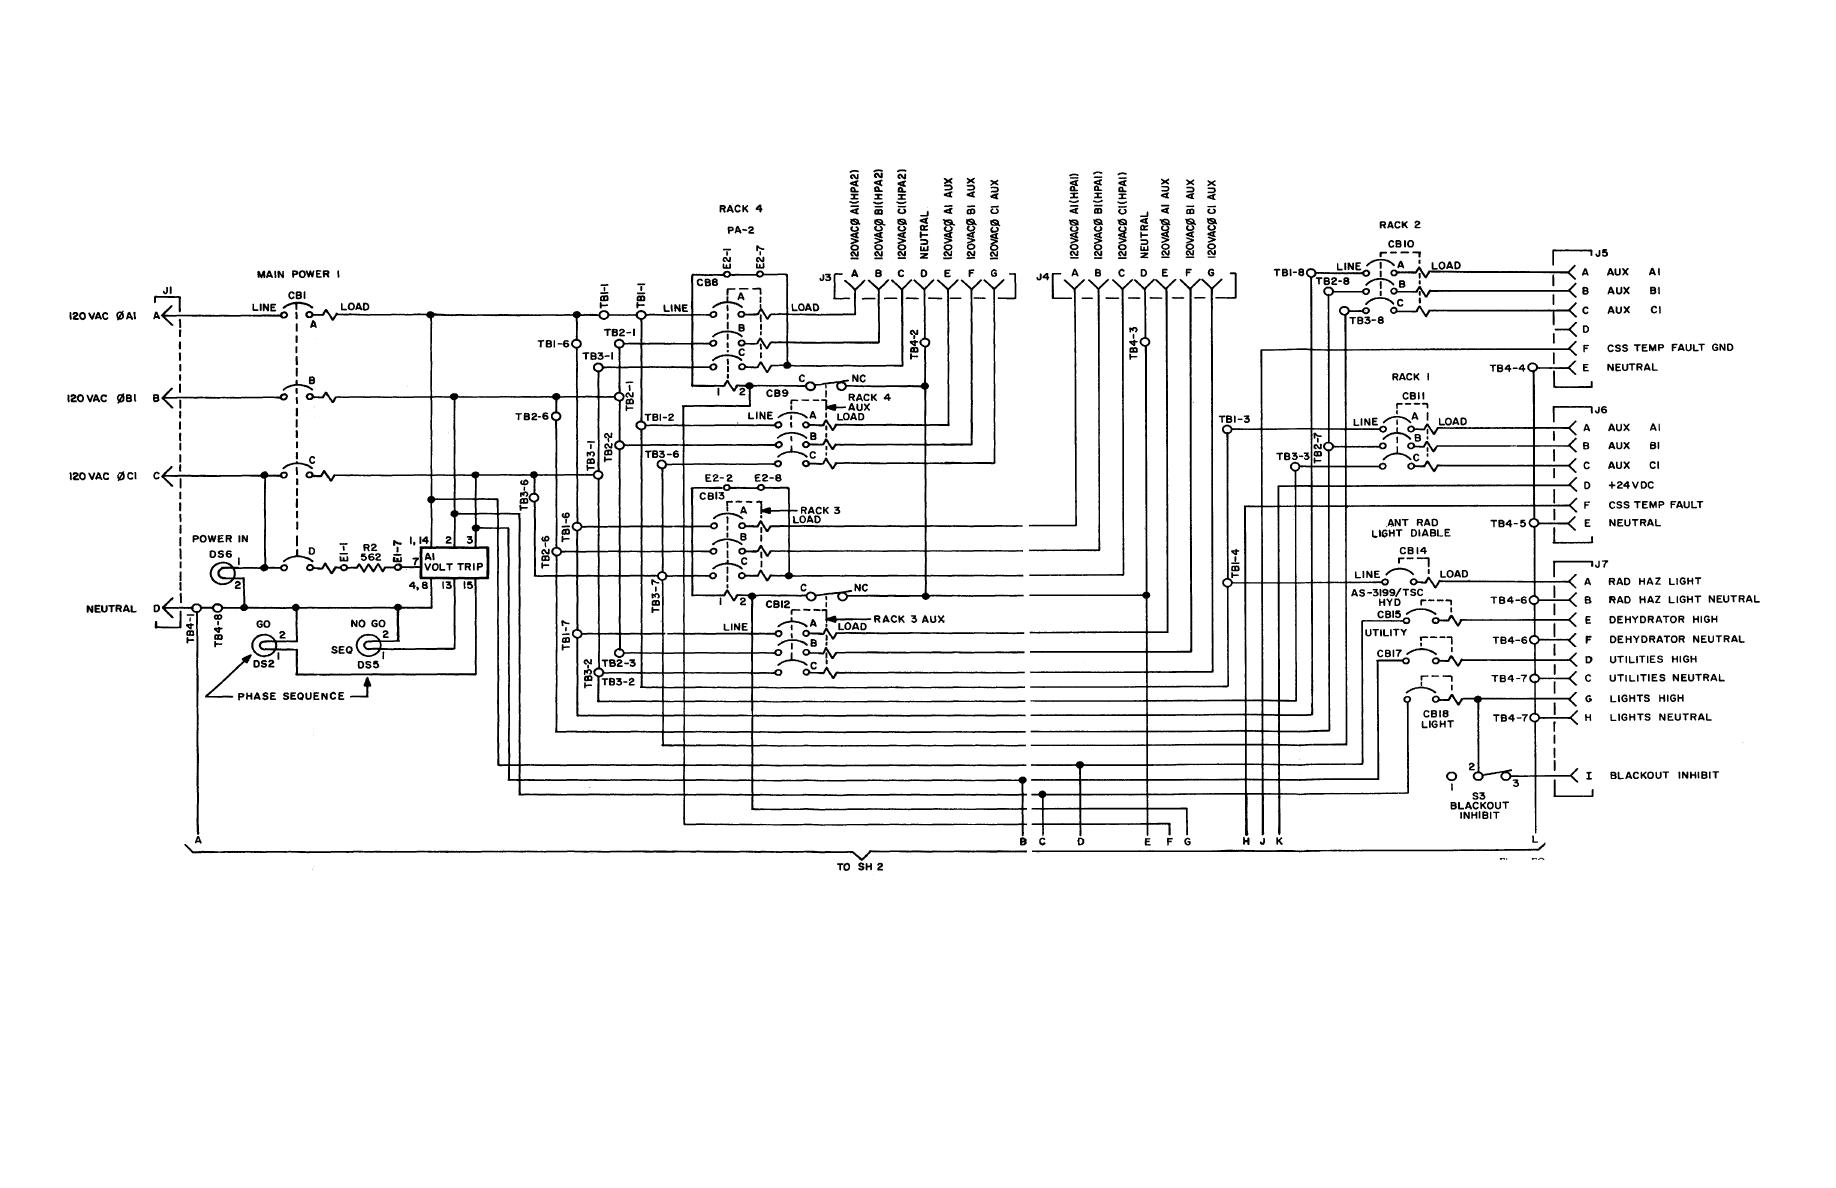 Wiring Panel Diagram Library L14 Electrical Diagrams Power Distribution Schematic Sheet 1 Of 2